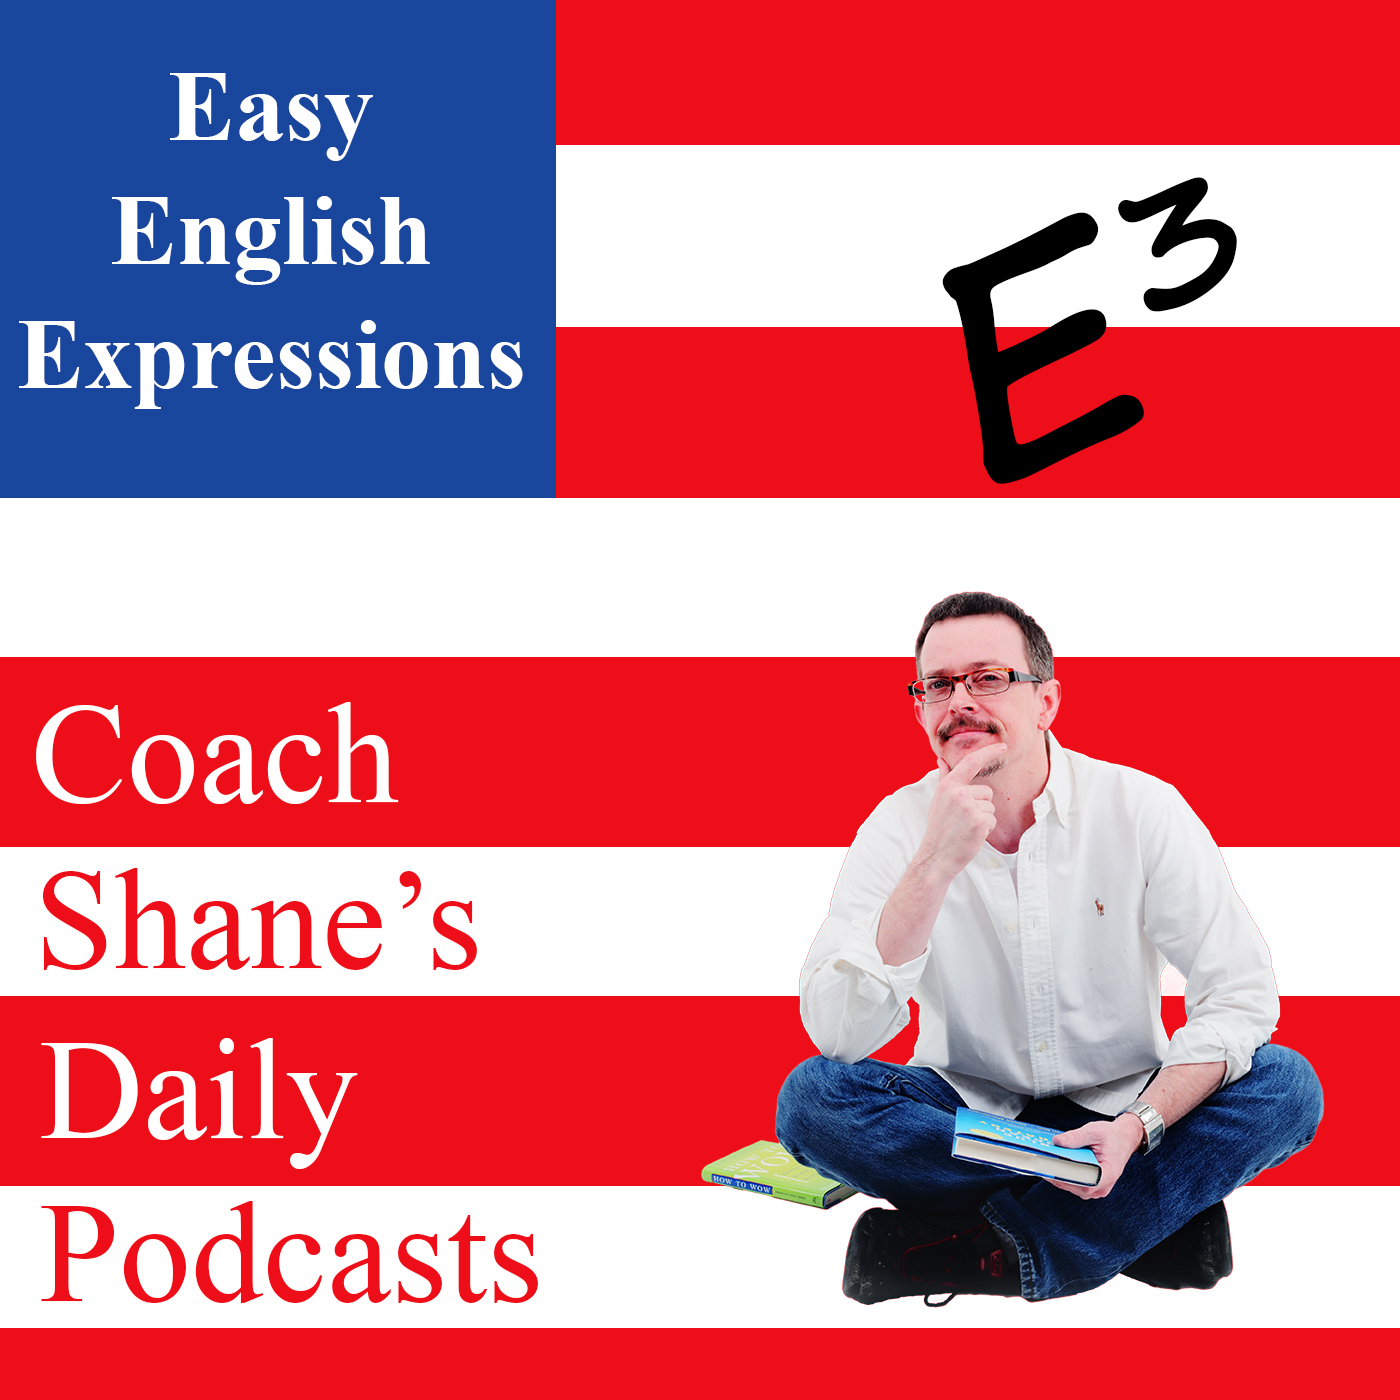 44 Daily Easy English Expression PODCAST—a pain in the neck